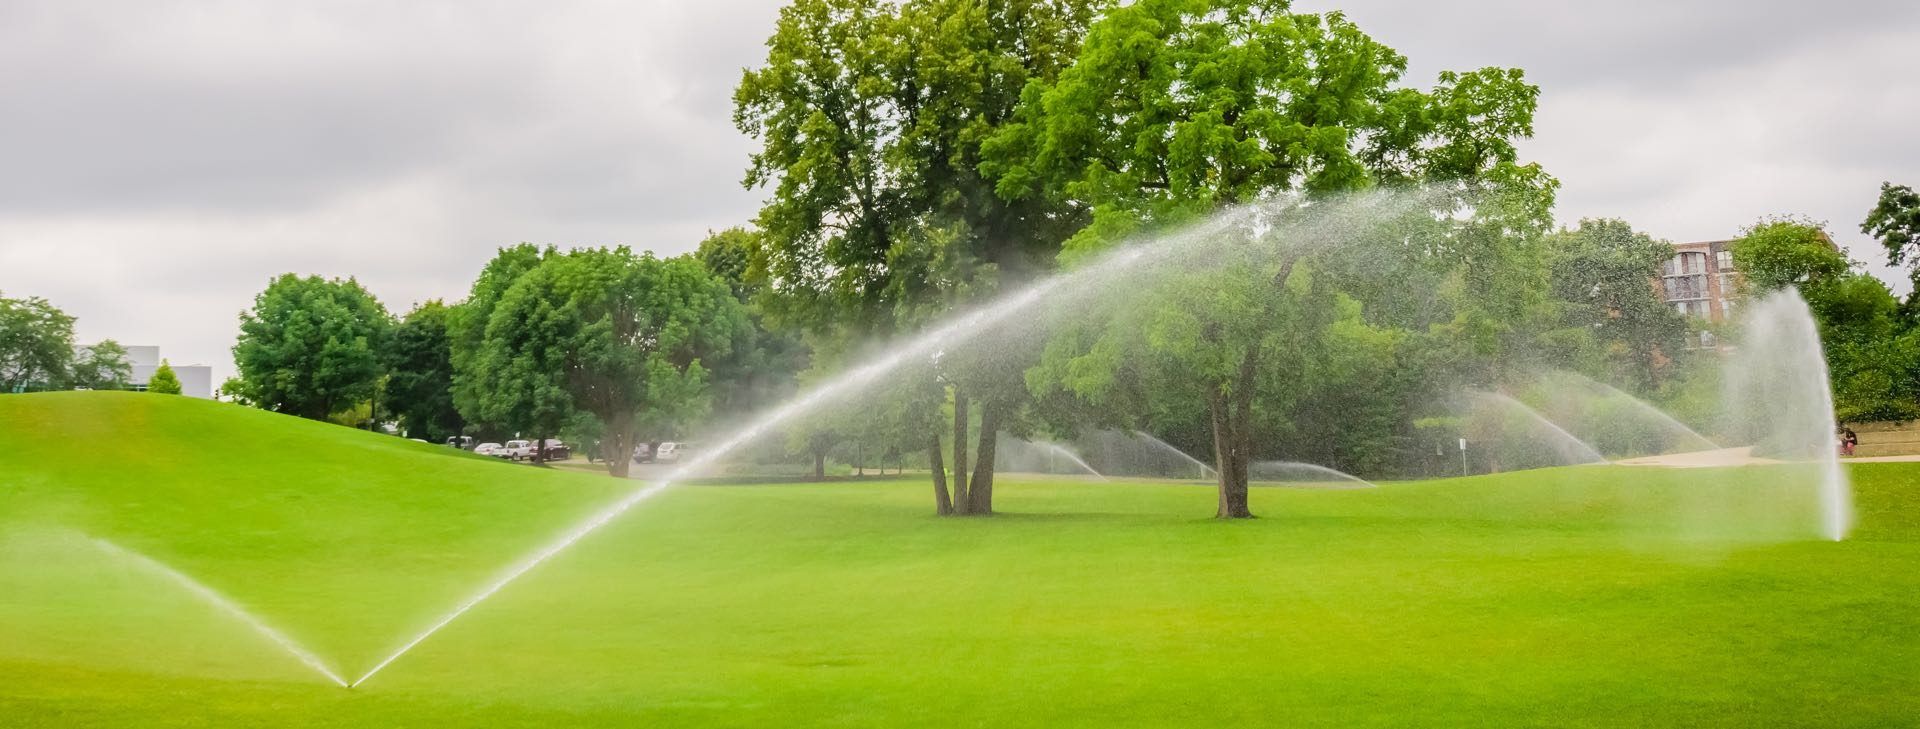 It's time to get your irrigation system started with our guaranteed Start Up Service and Backflow tests